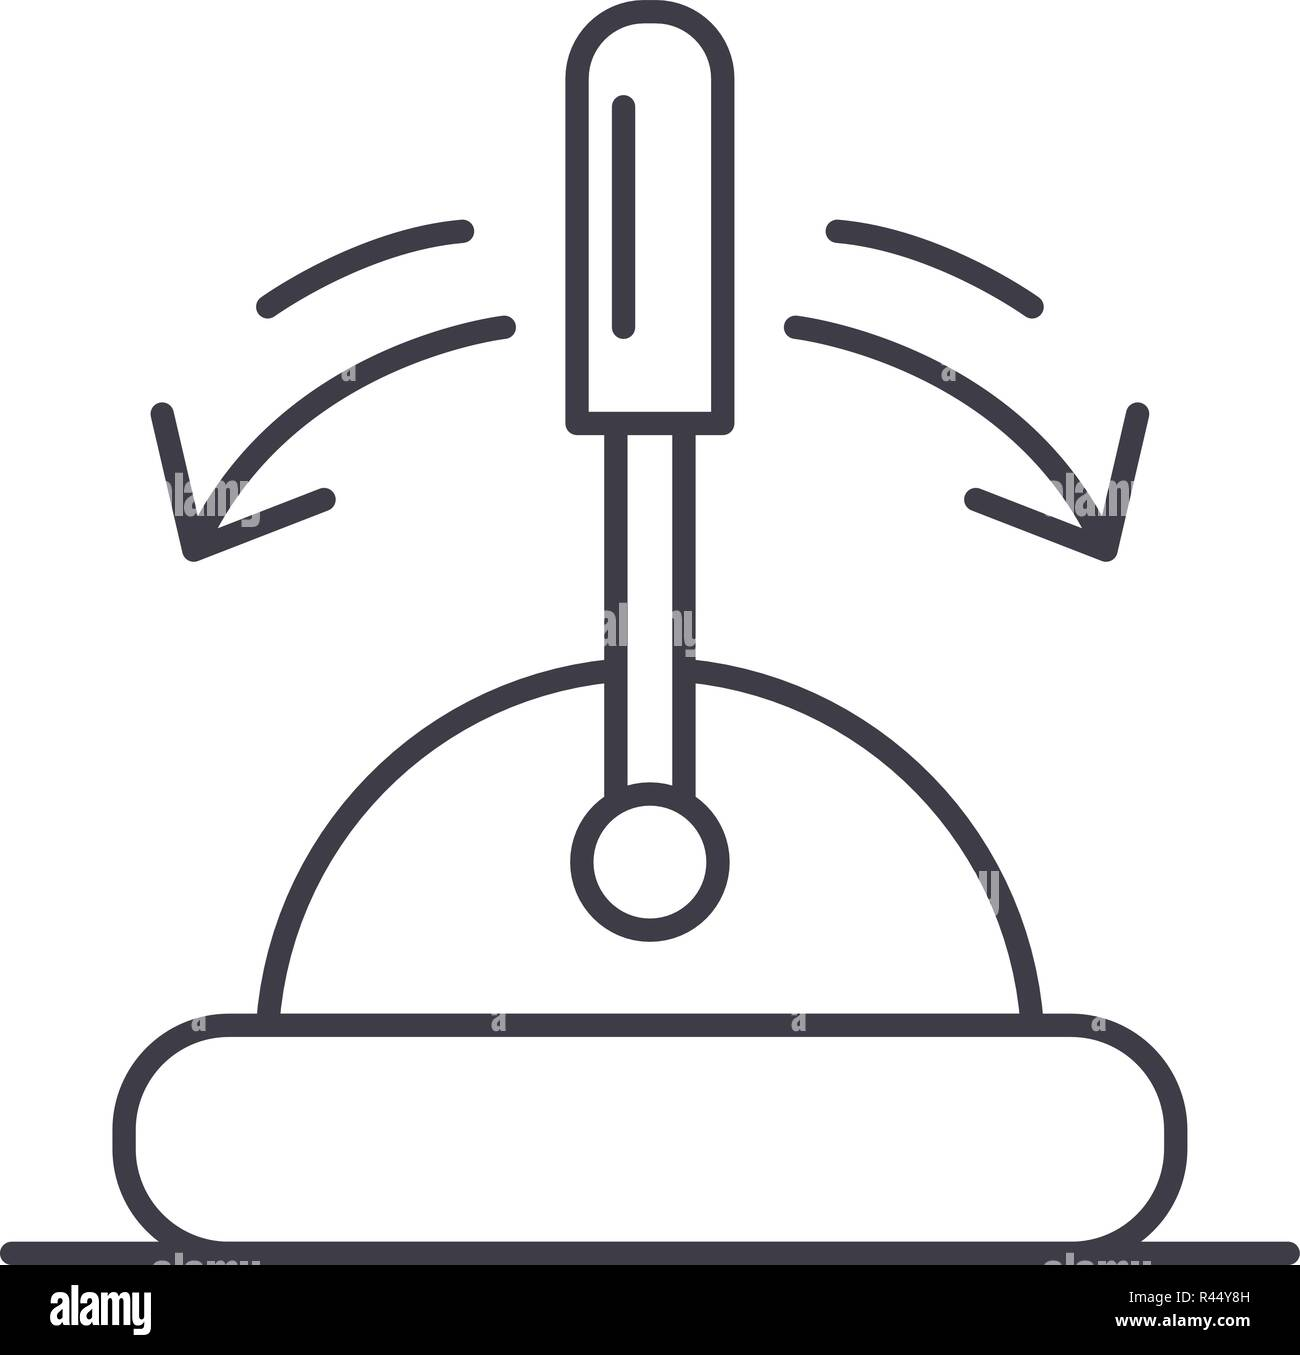 Toggle switch line icon concept. Toggle switch vector linear illustration, symbol, sign - Stock Image